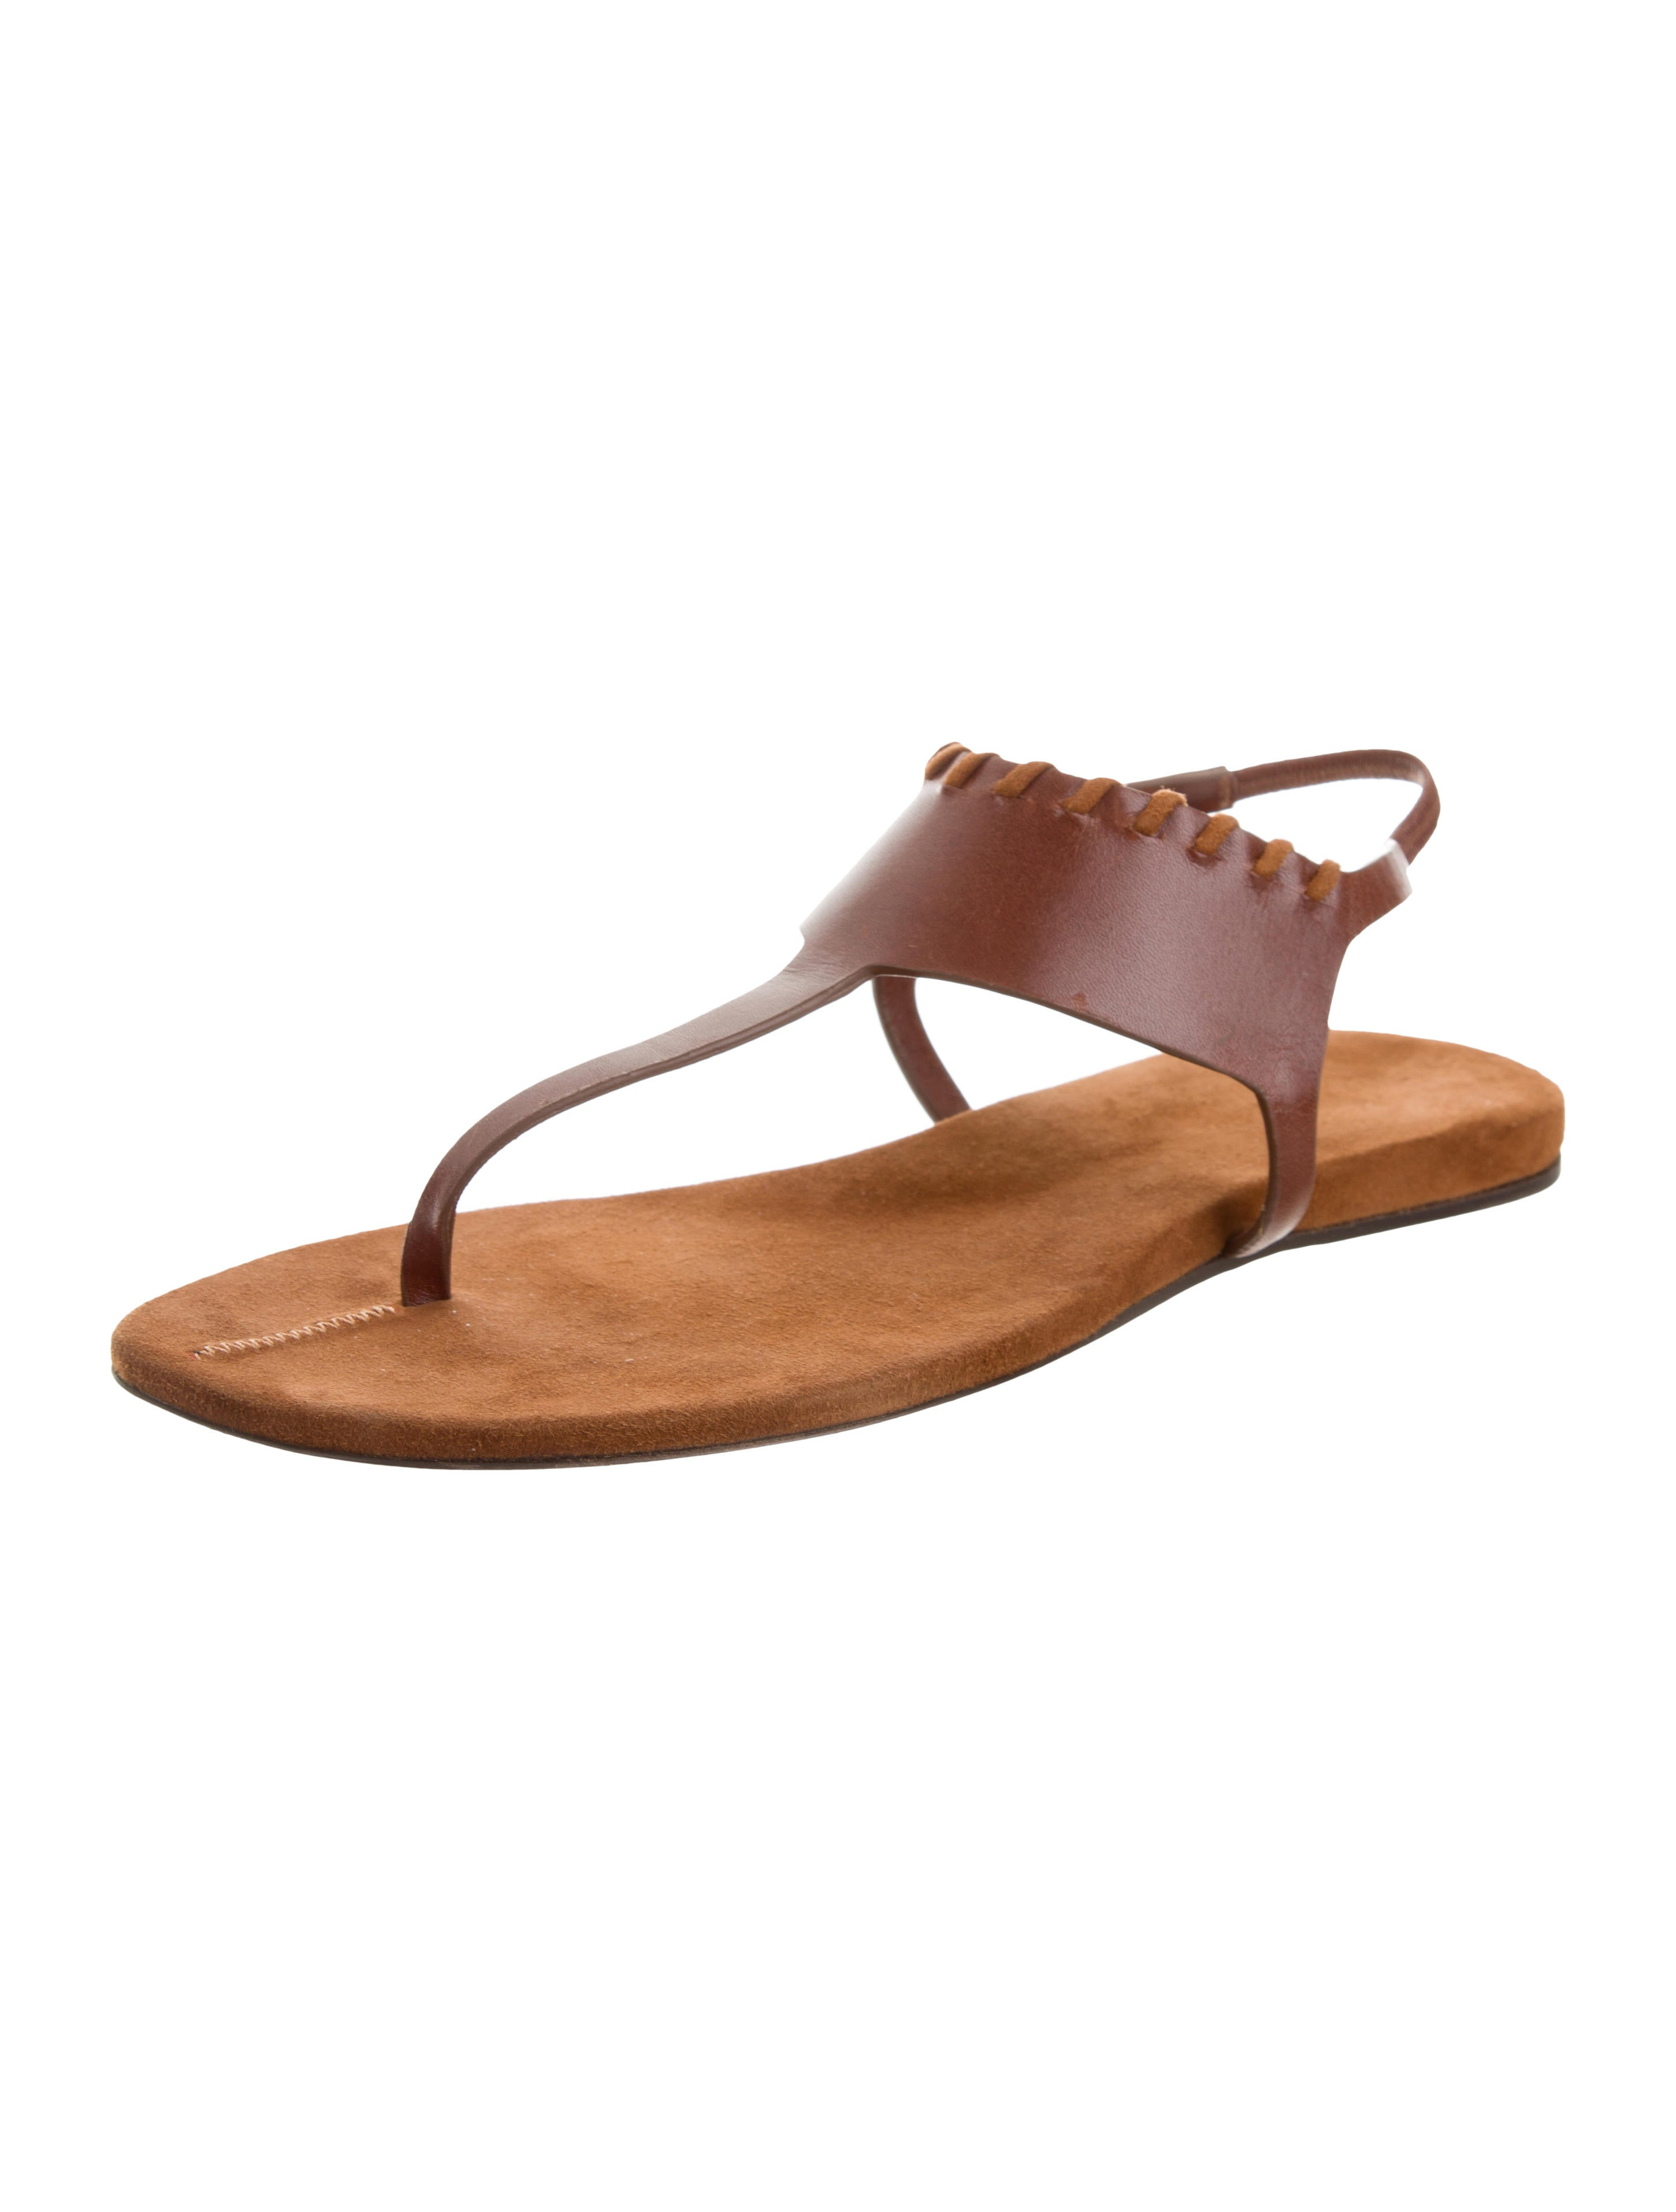 Carritz Salome Suede Sandals w/ Tags discount cheap price buy cheap price low price sale online 9x9ARrju